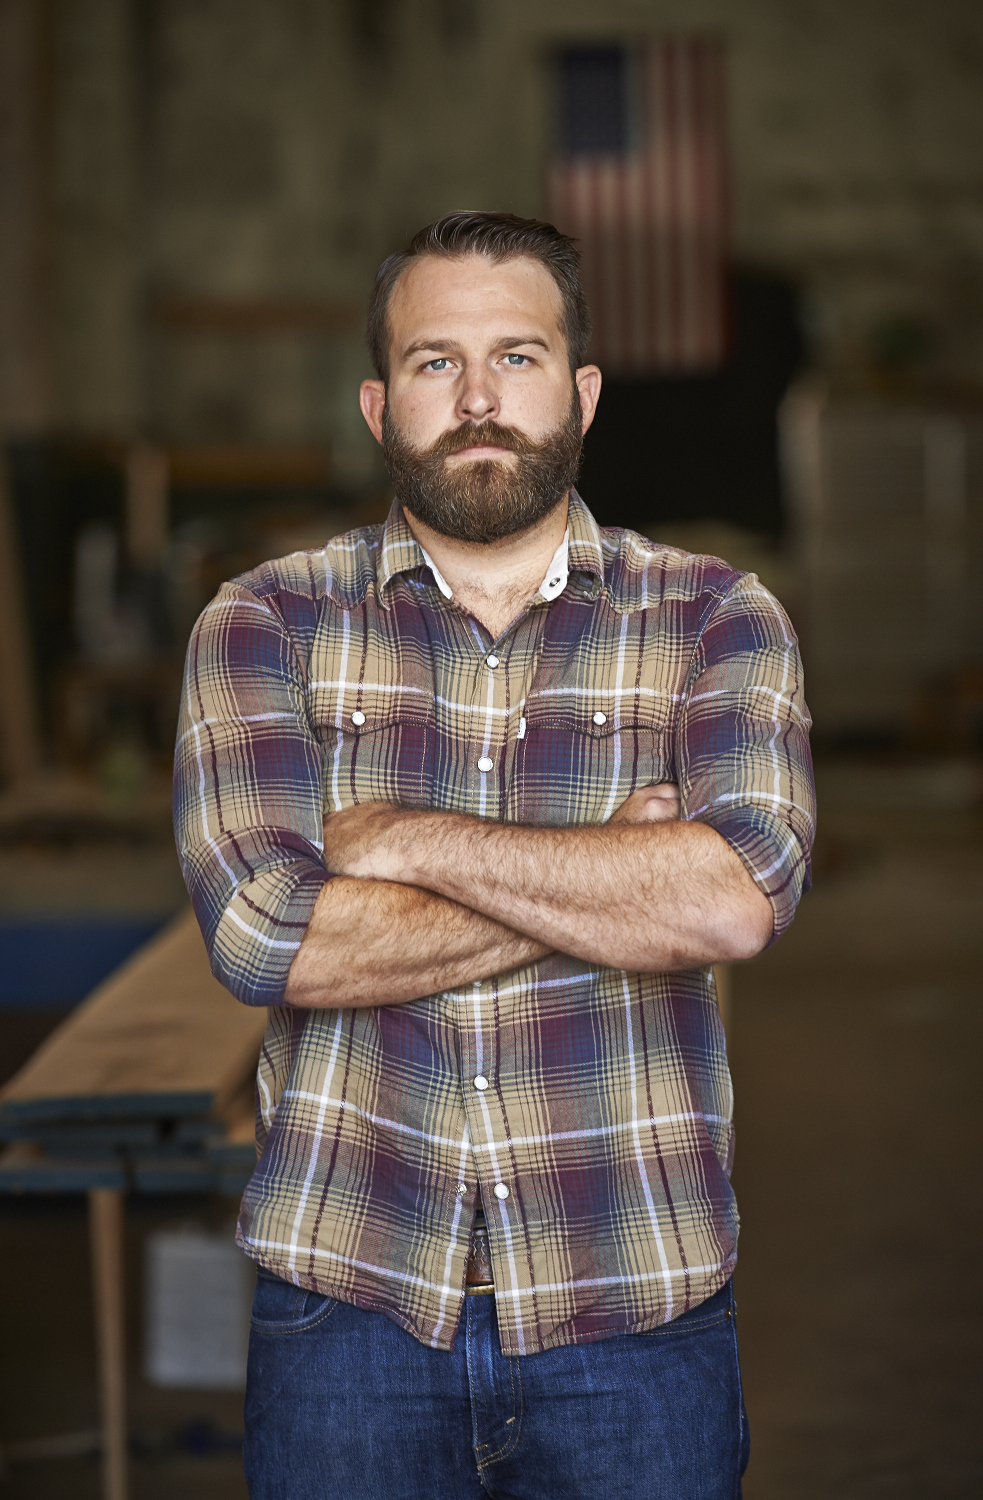 Patrick Blake is an artist and designer with a masters in Industrial Design from Georgia Tech. He's been building and designing furniture for years and is skilled at developing work that combines quality, functionality and artistic flair.